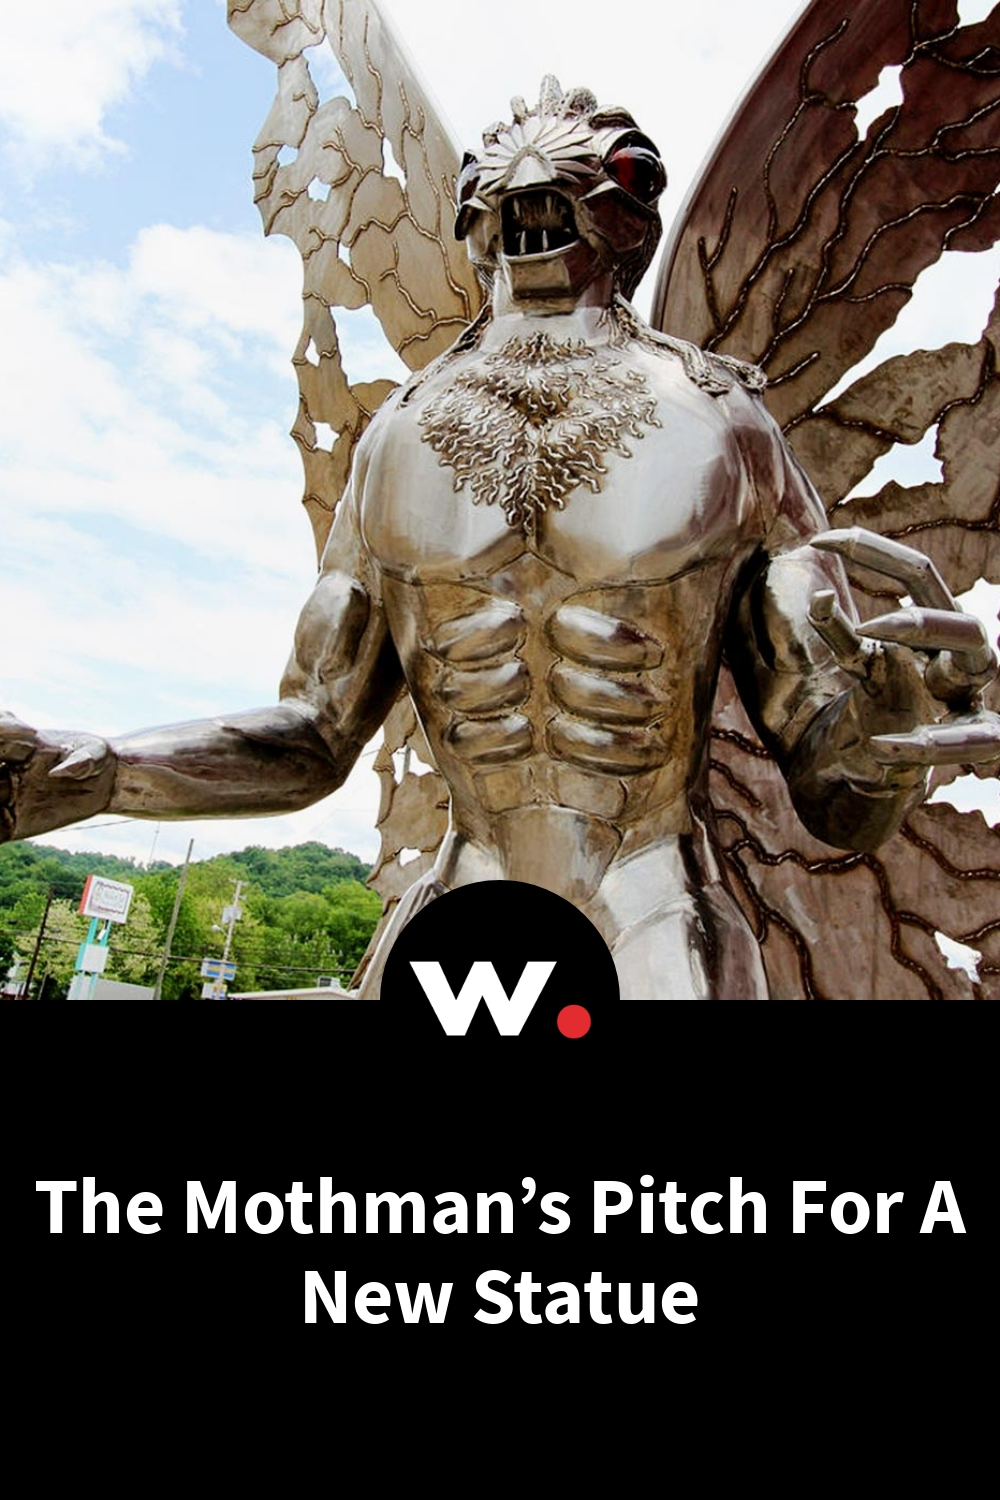 The Mothman's Pitch For A New Statue